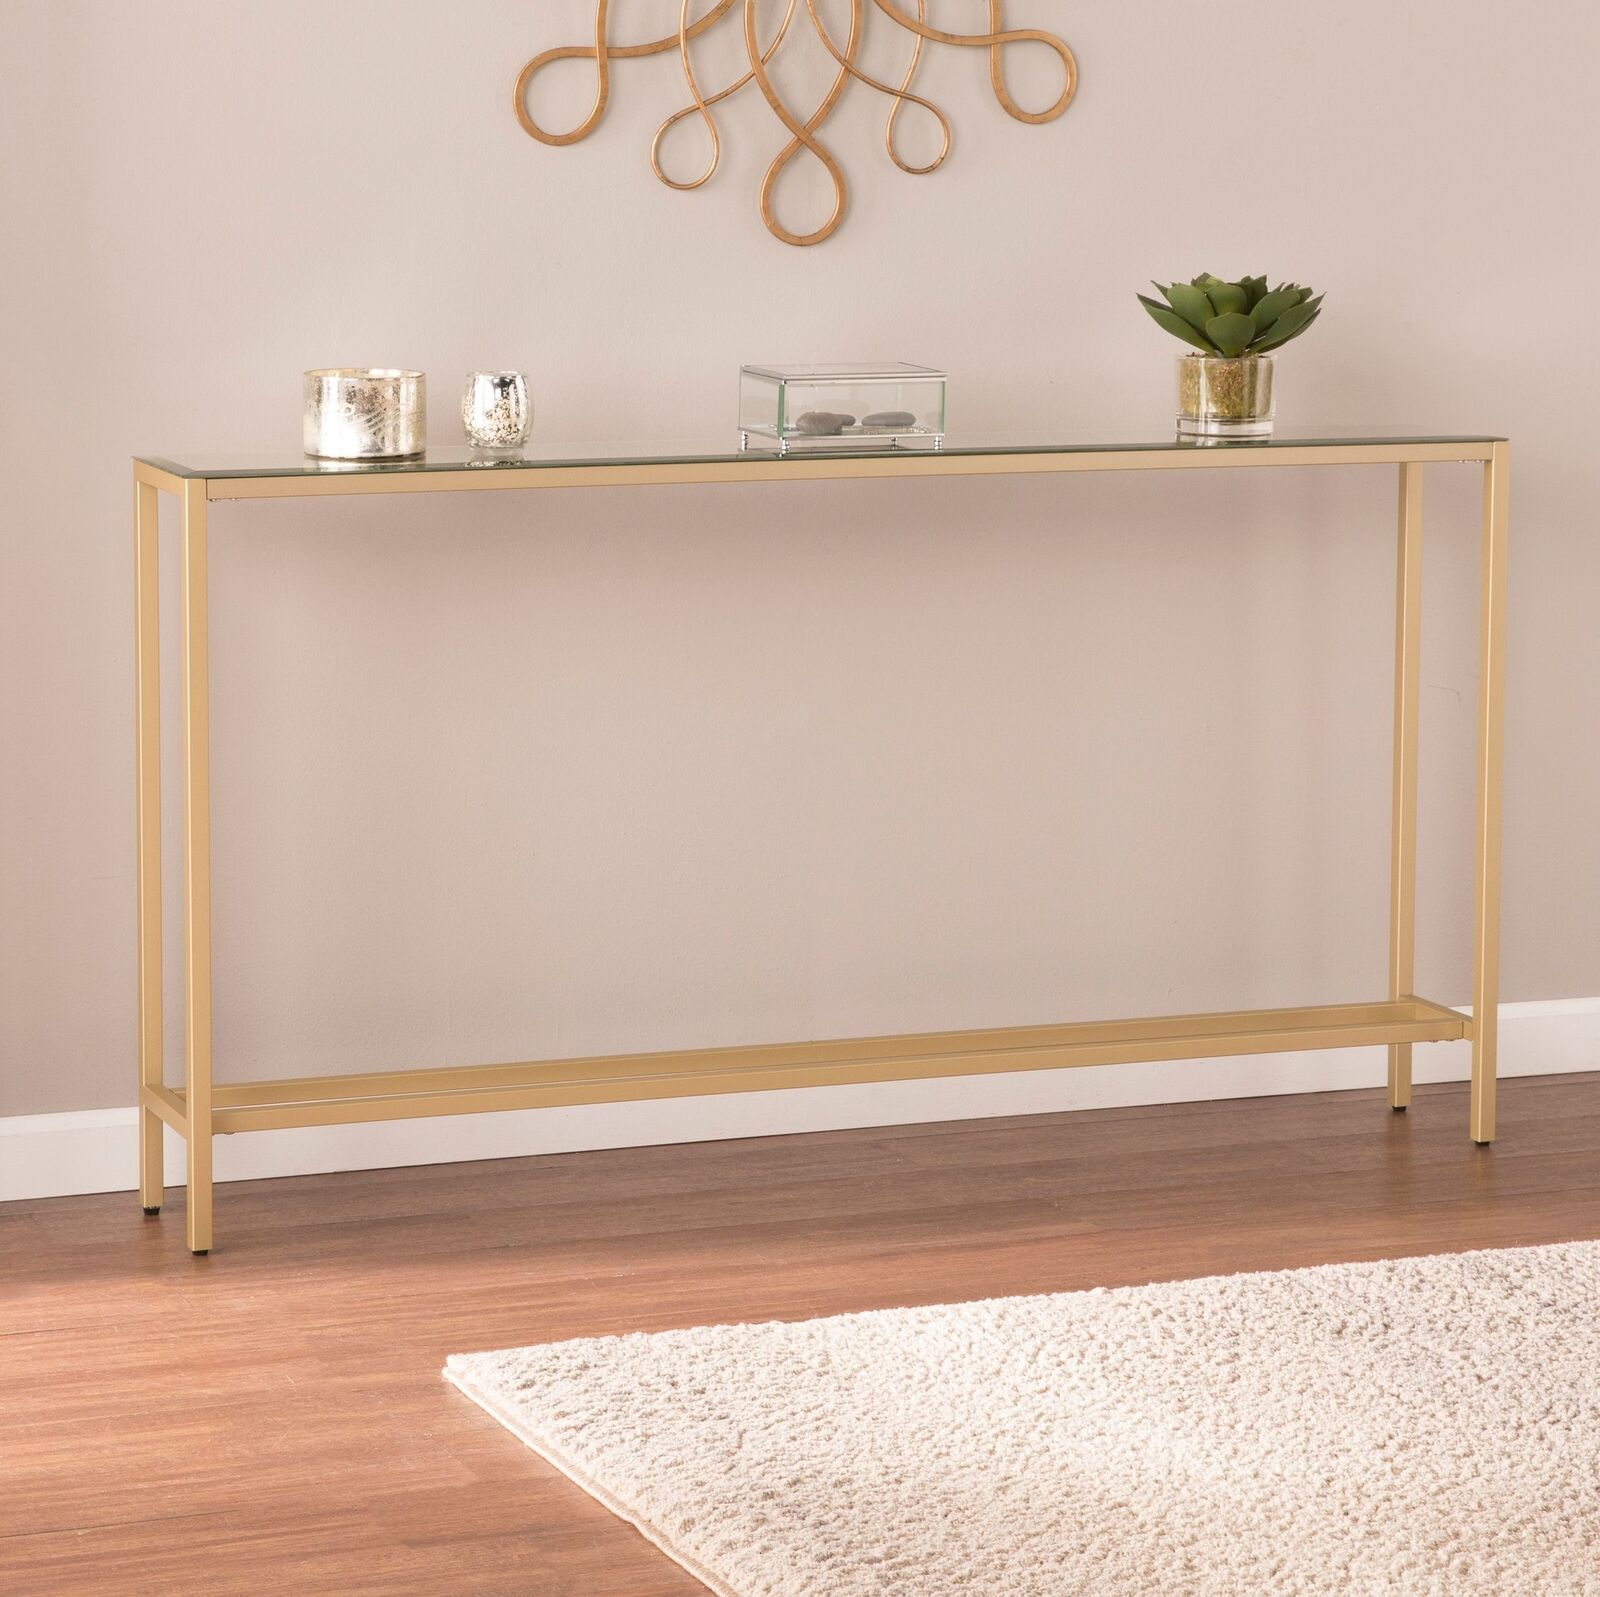 Narrow Long Console Table Mirrored Top Entryway Sofa End Hub Storage Gold Finish 689249875251 Ebay